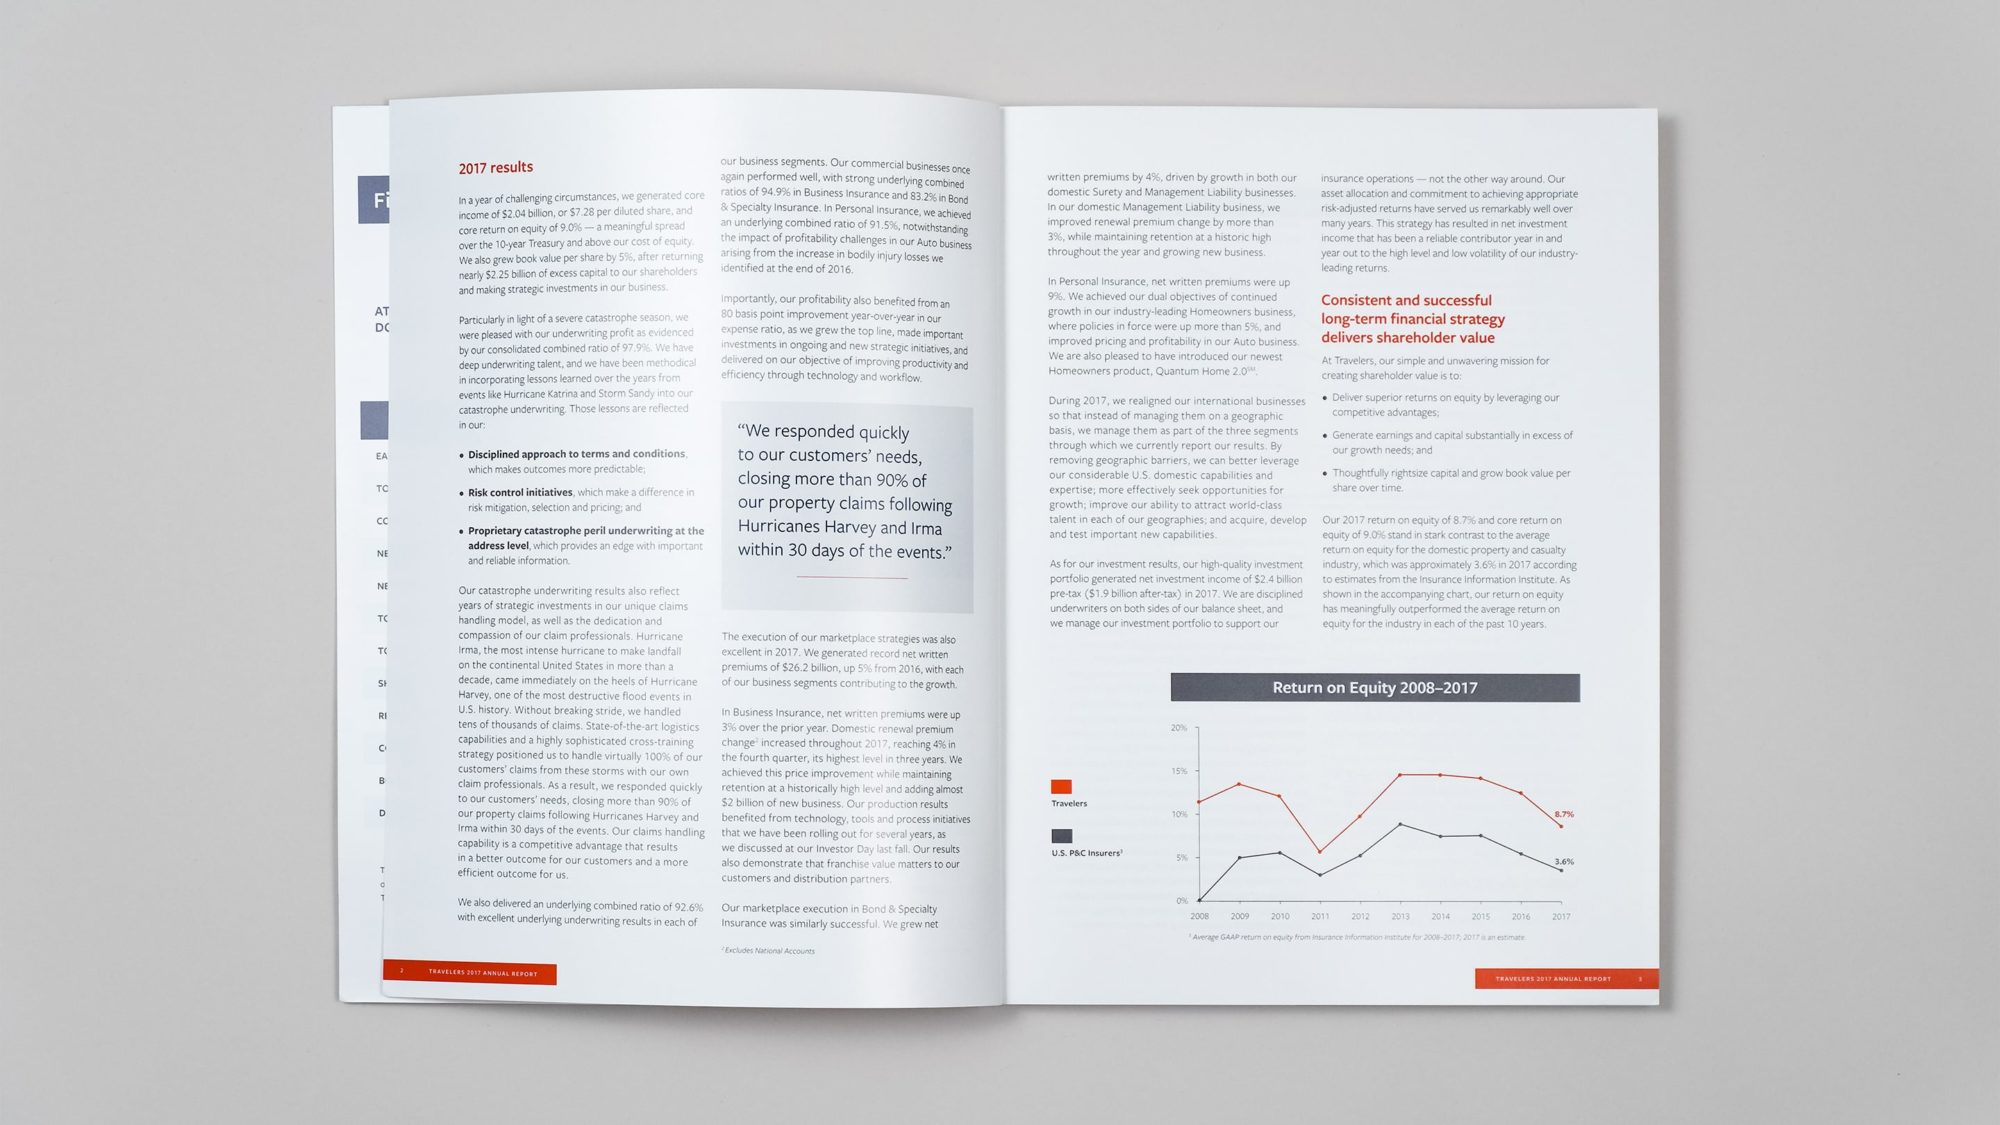 Interior spread of annual report with CEO's letter. Copy is supplemented with a line graph showing Return on Equity since 2008 and a pullquote from the CEO.